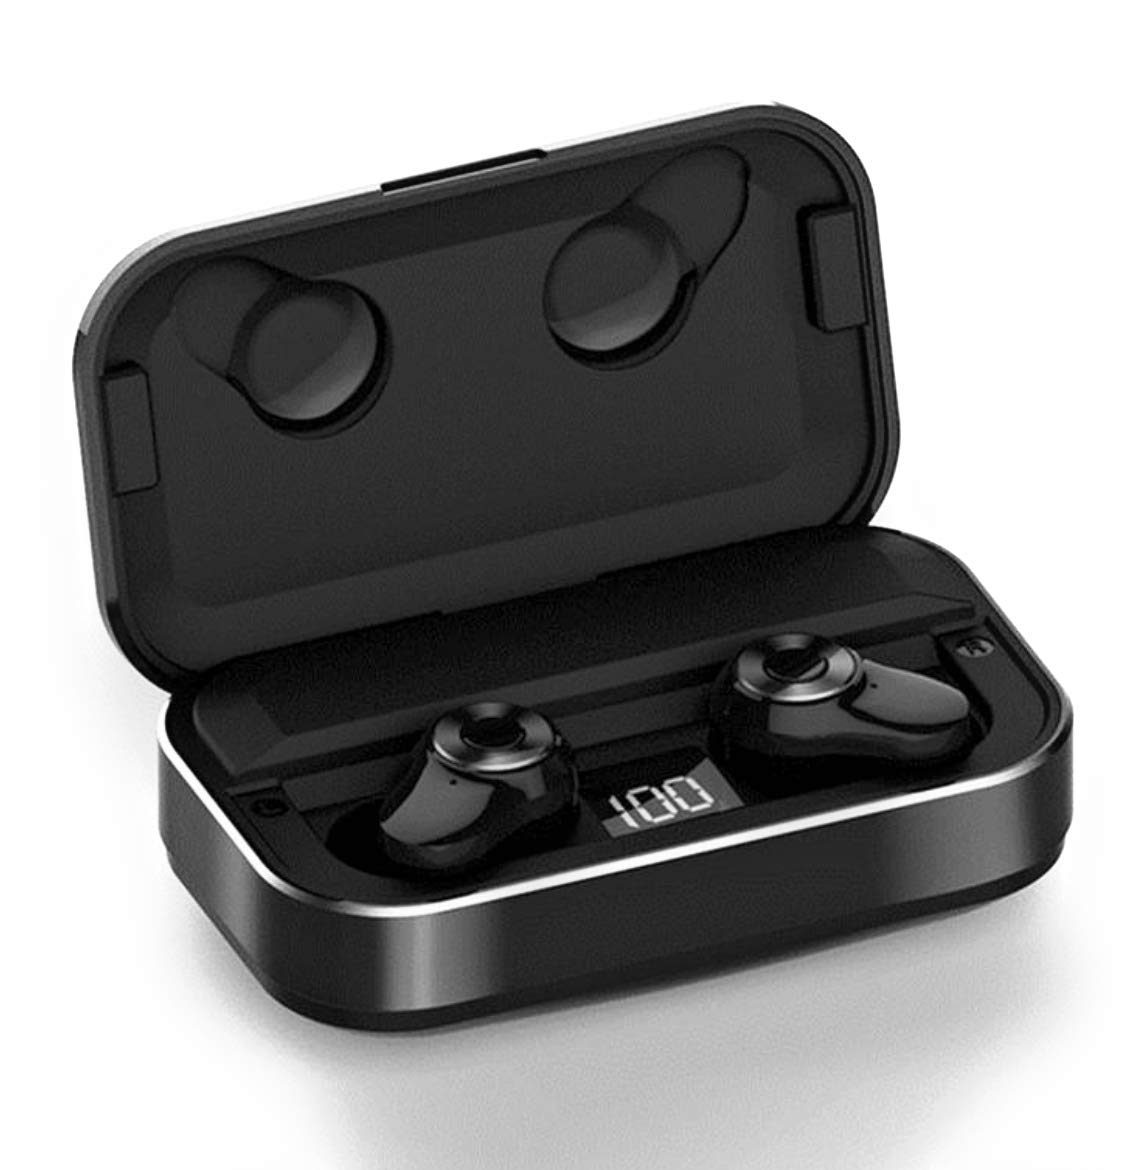 Bluetooth Earbuds 5.0 Headphones with Digital Intelligence LED Display Charging Case 90H Playtime Stereo Sound Headset IPX7 Waterproof Built-in Mic for Driving/Work/Sports